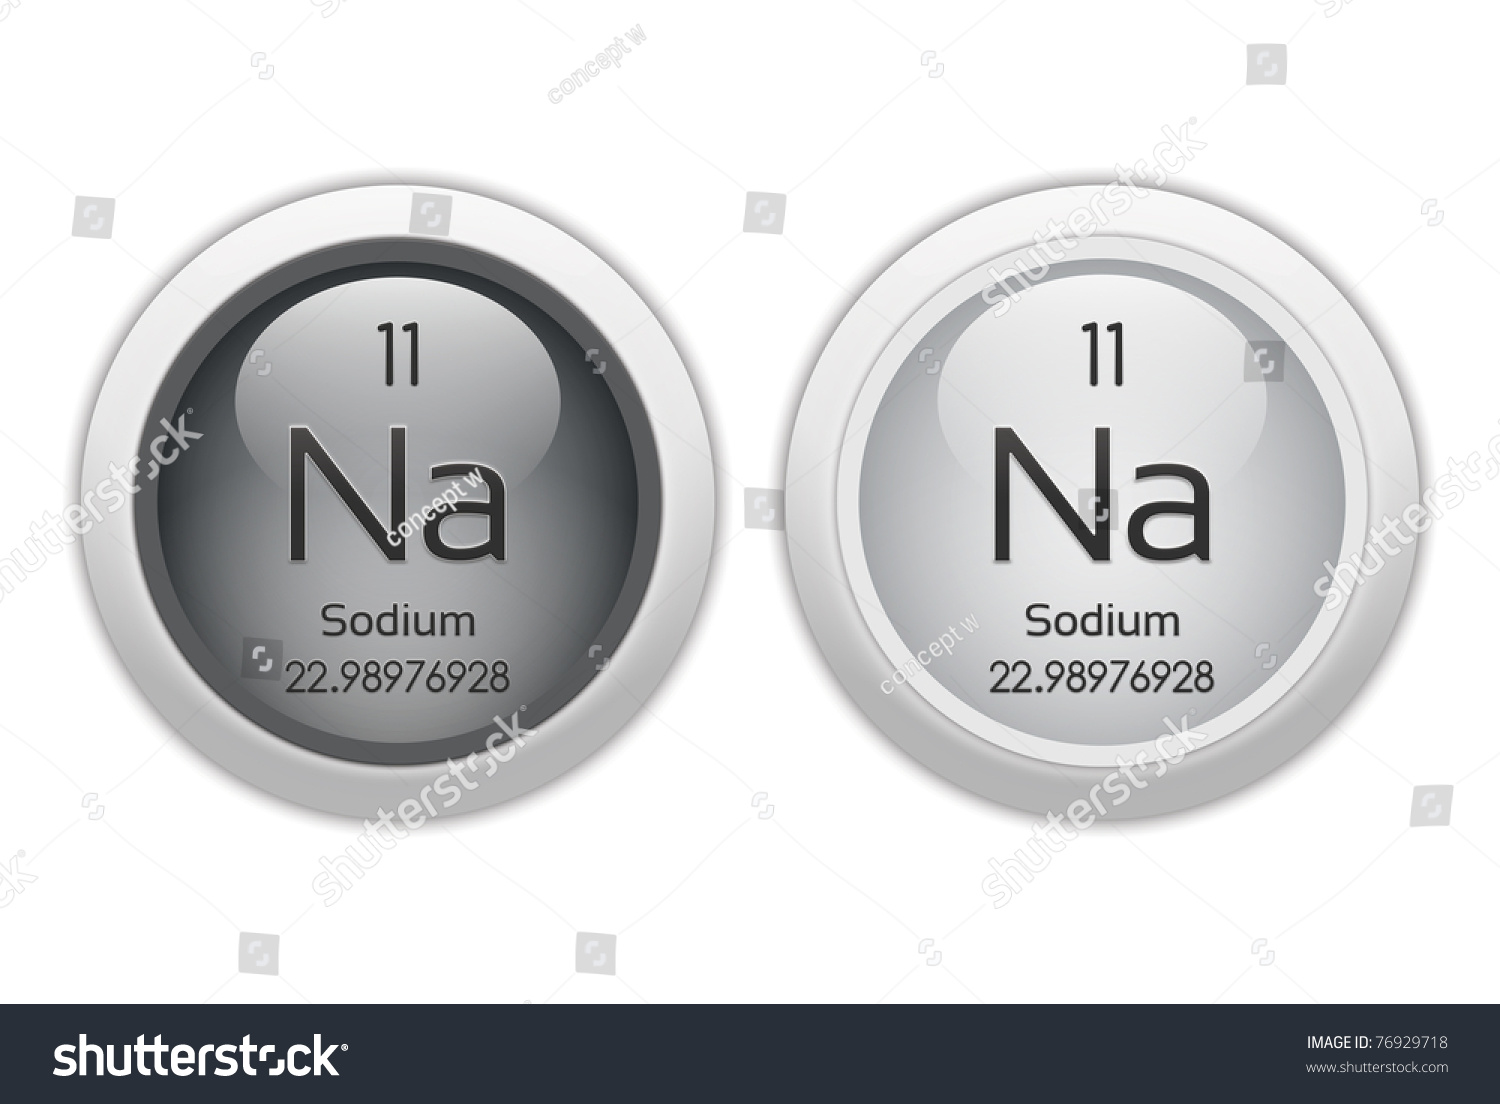 Sodium Two Web Buttons Chemical Element Stock Illustration 76929718